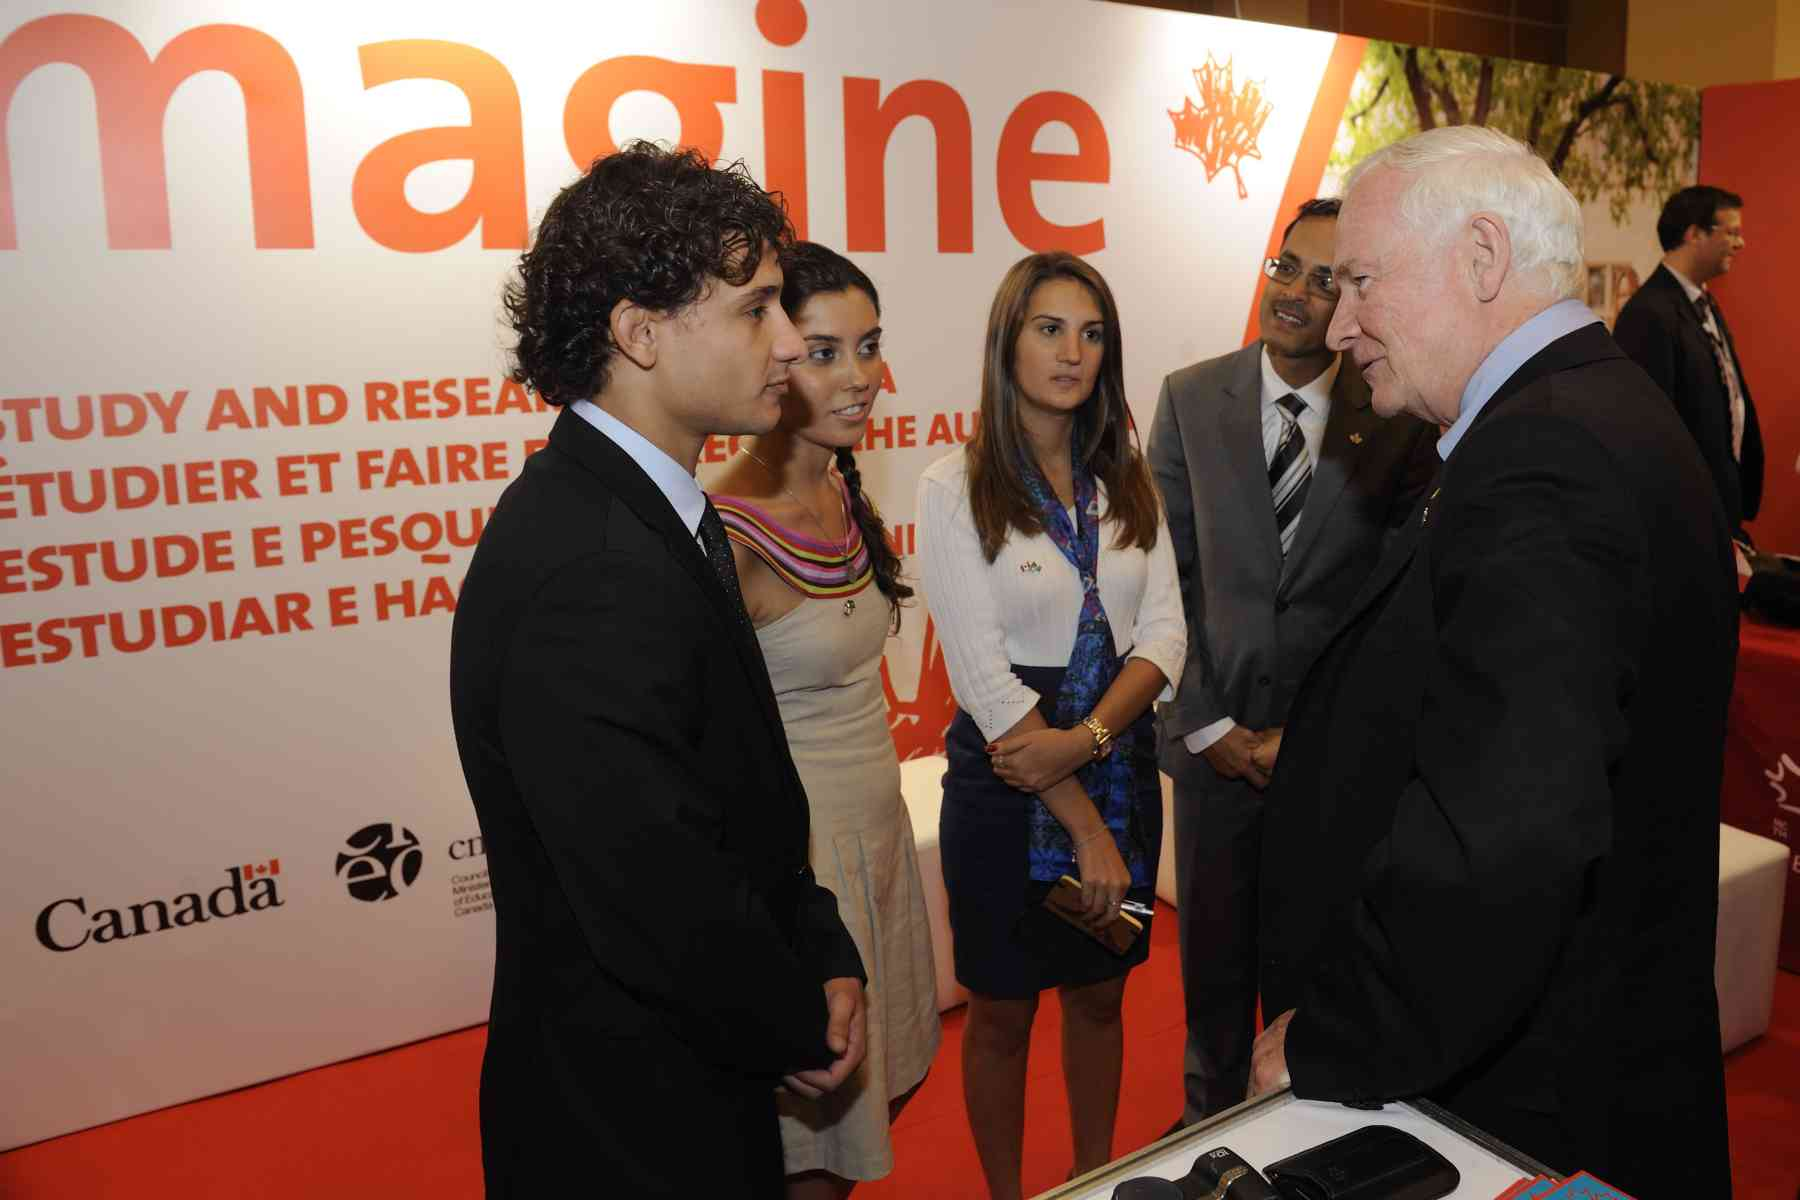 Following his address, the Governor General visited CAIE's Imagine Education in Canada booth where he spoke to Brazilian students who studied in Canada.